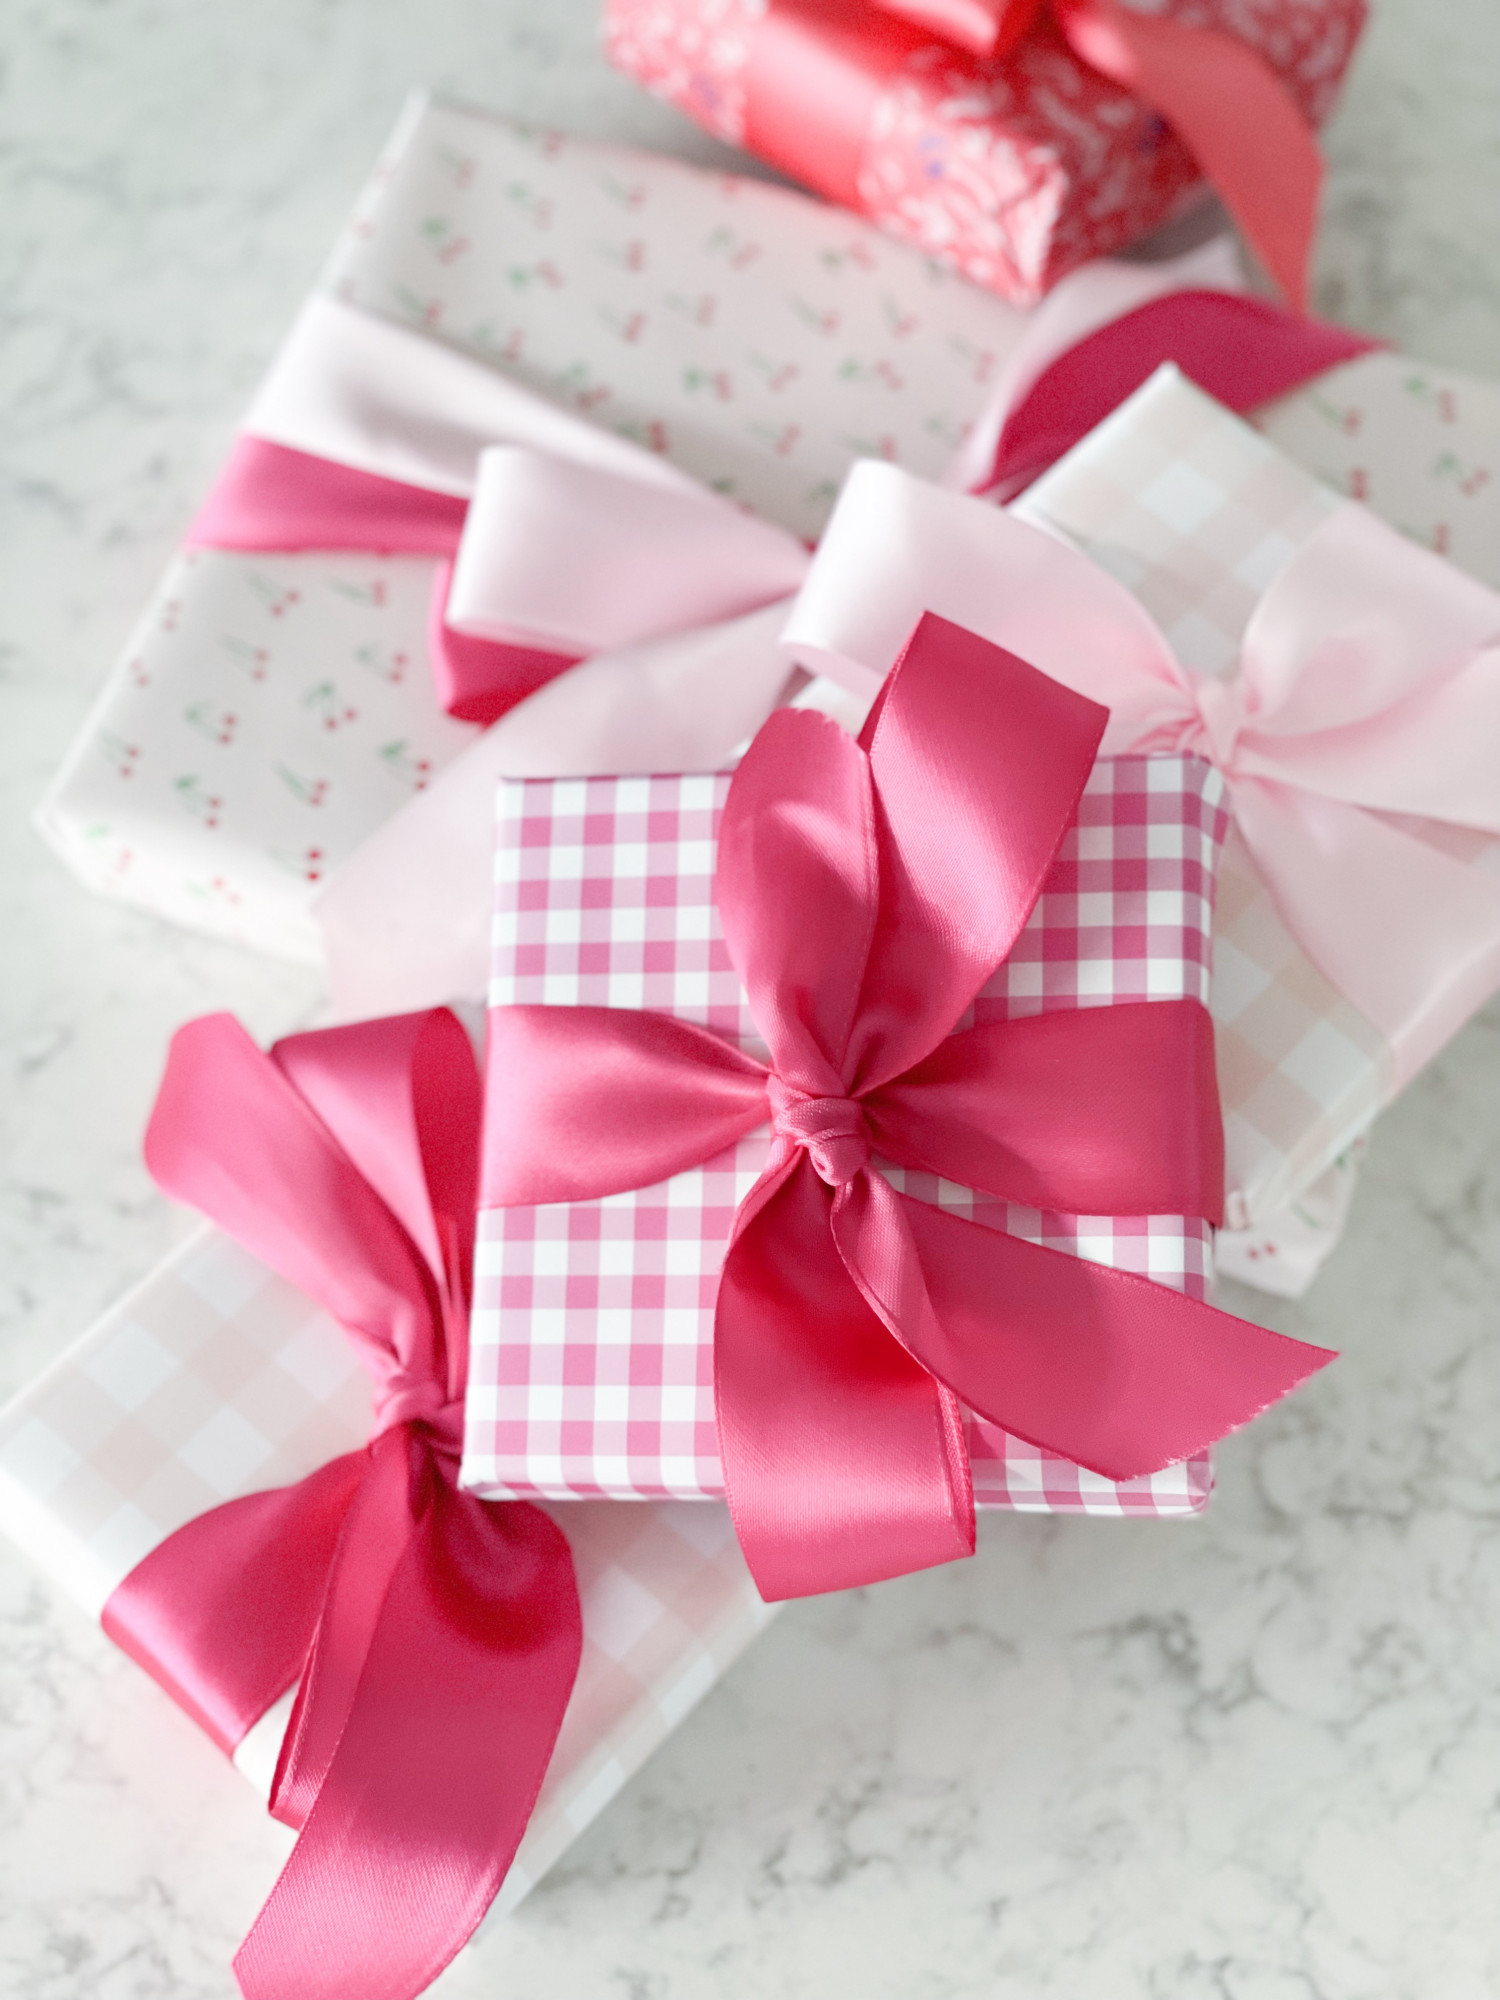 pink gingham gift